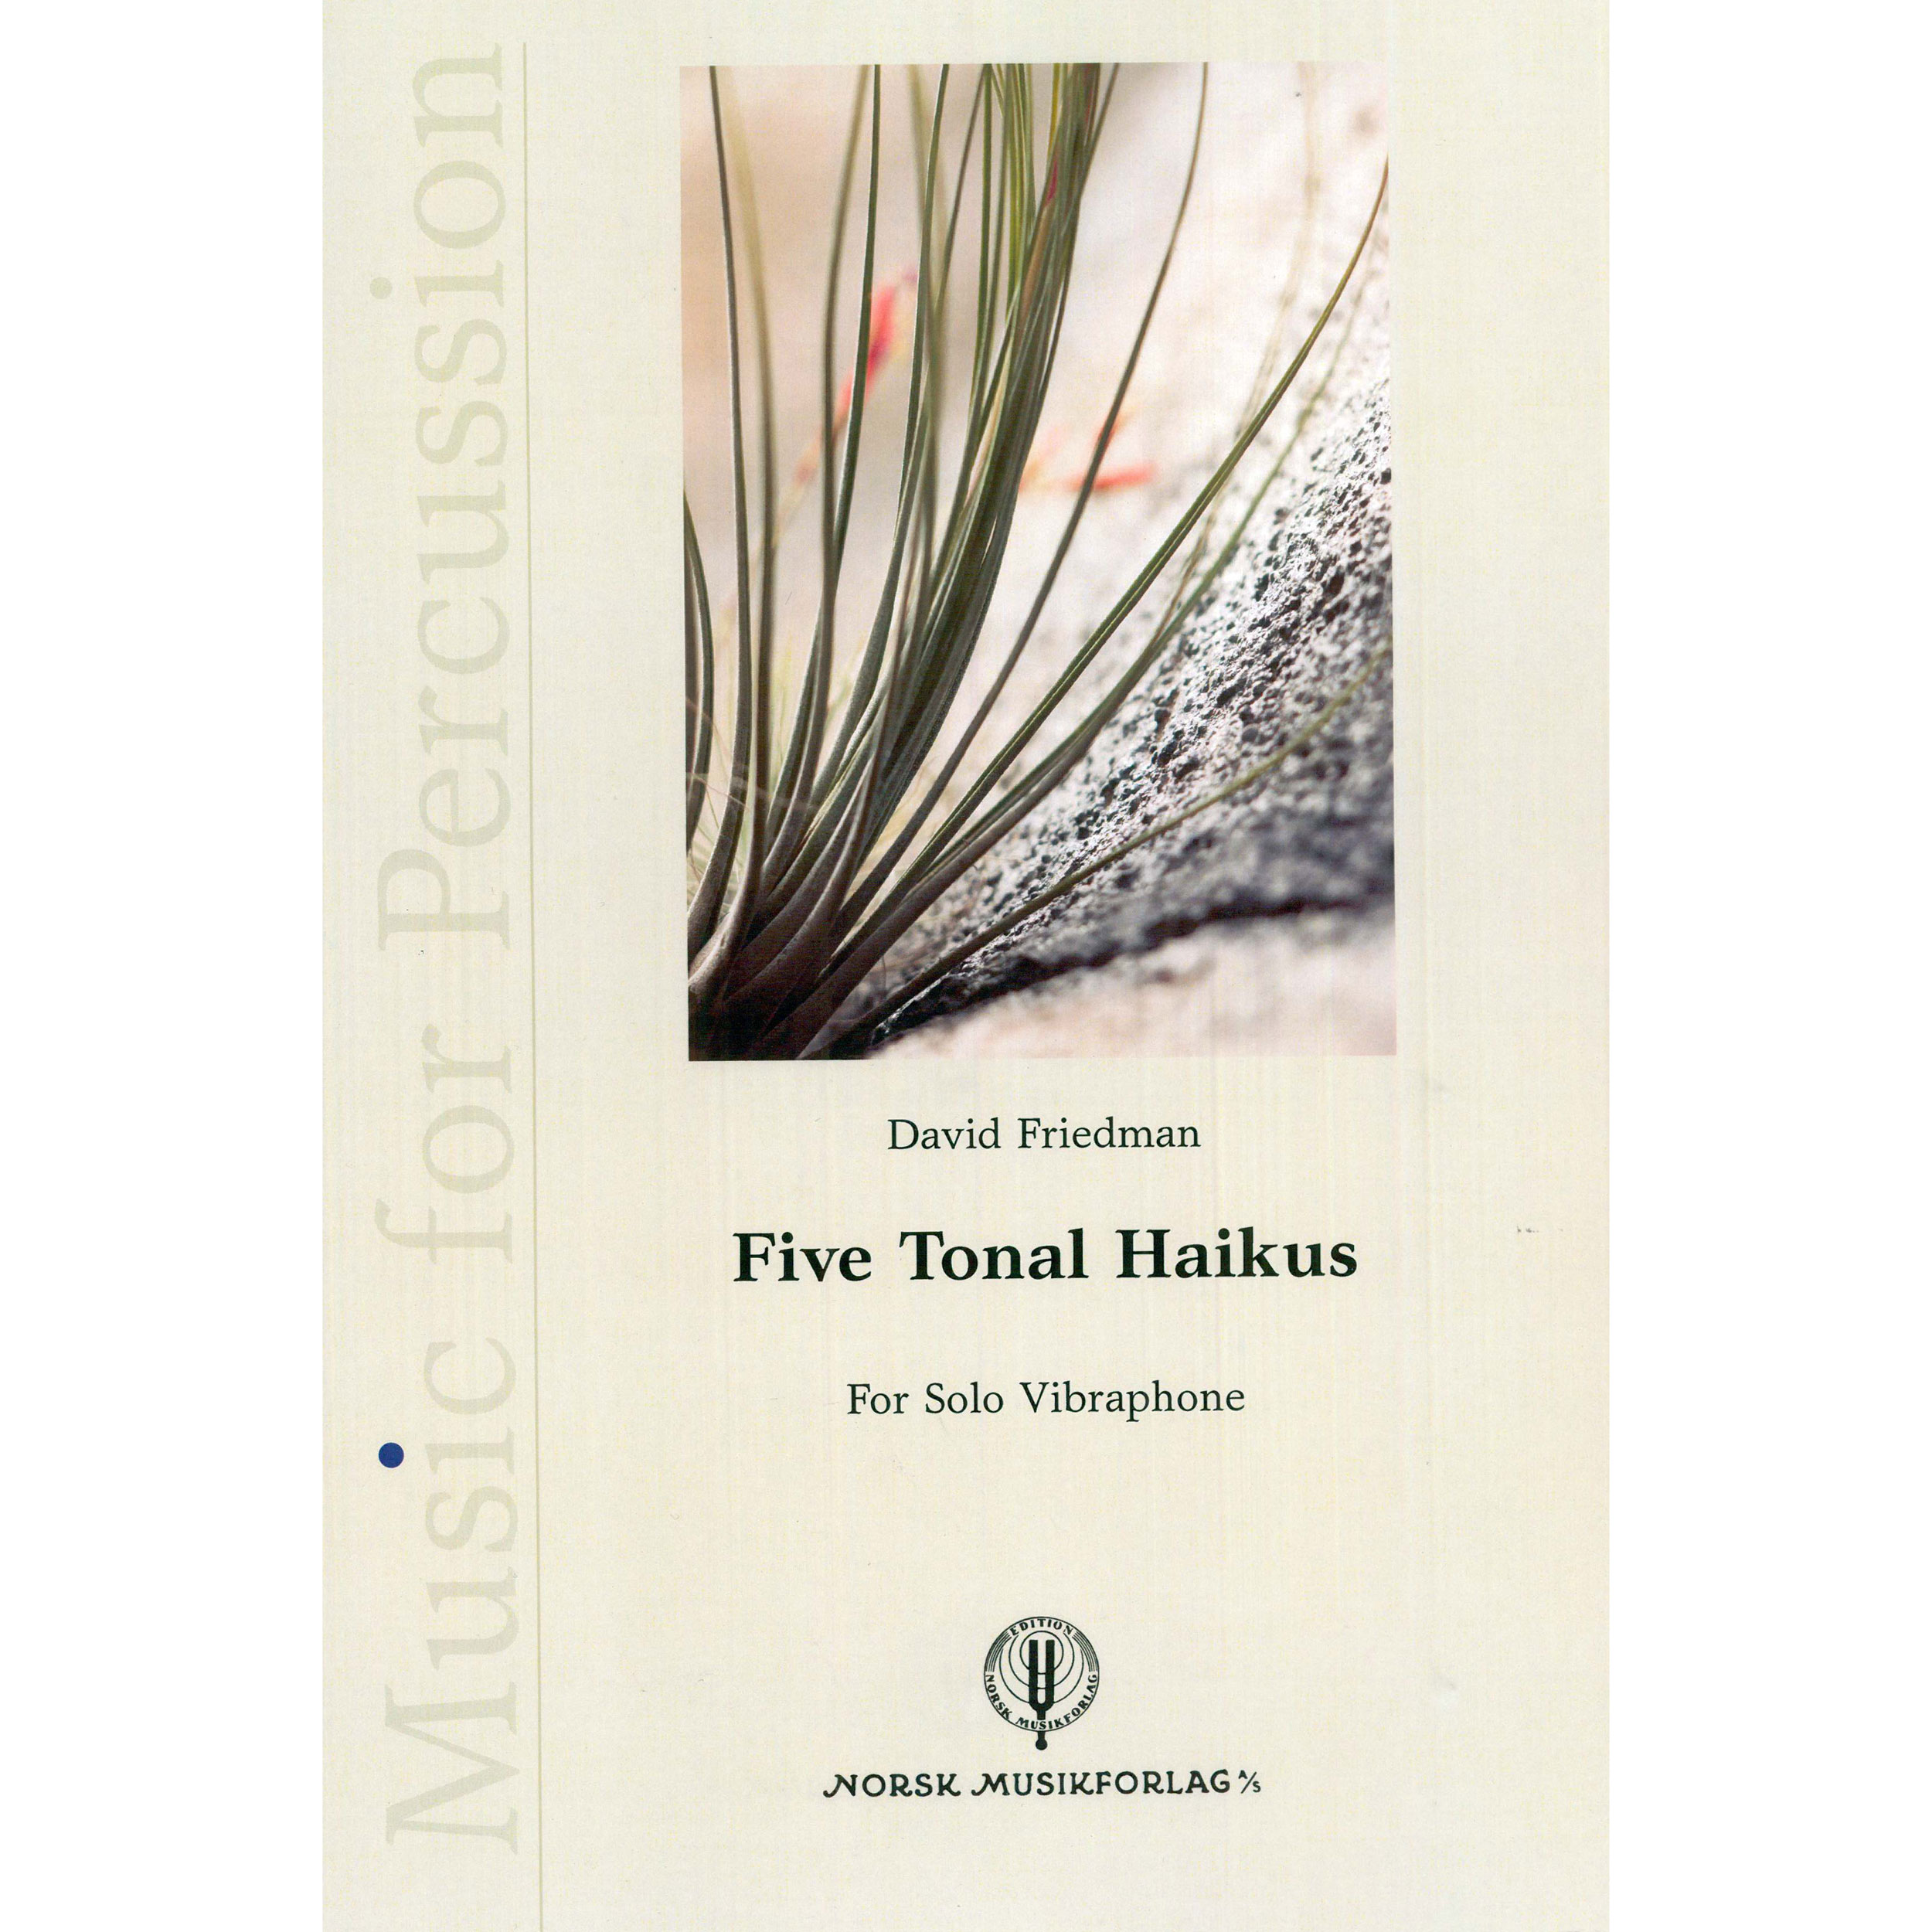 Five Tonal Haikus by David Friedman